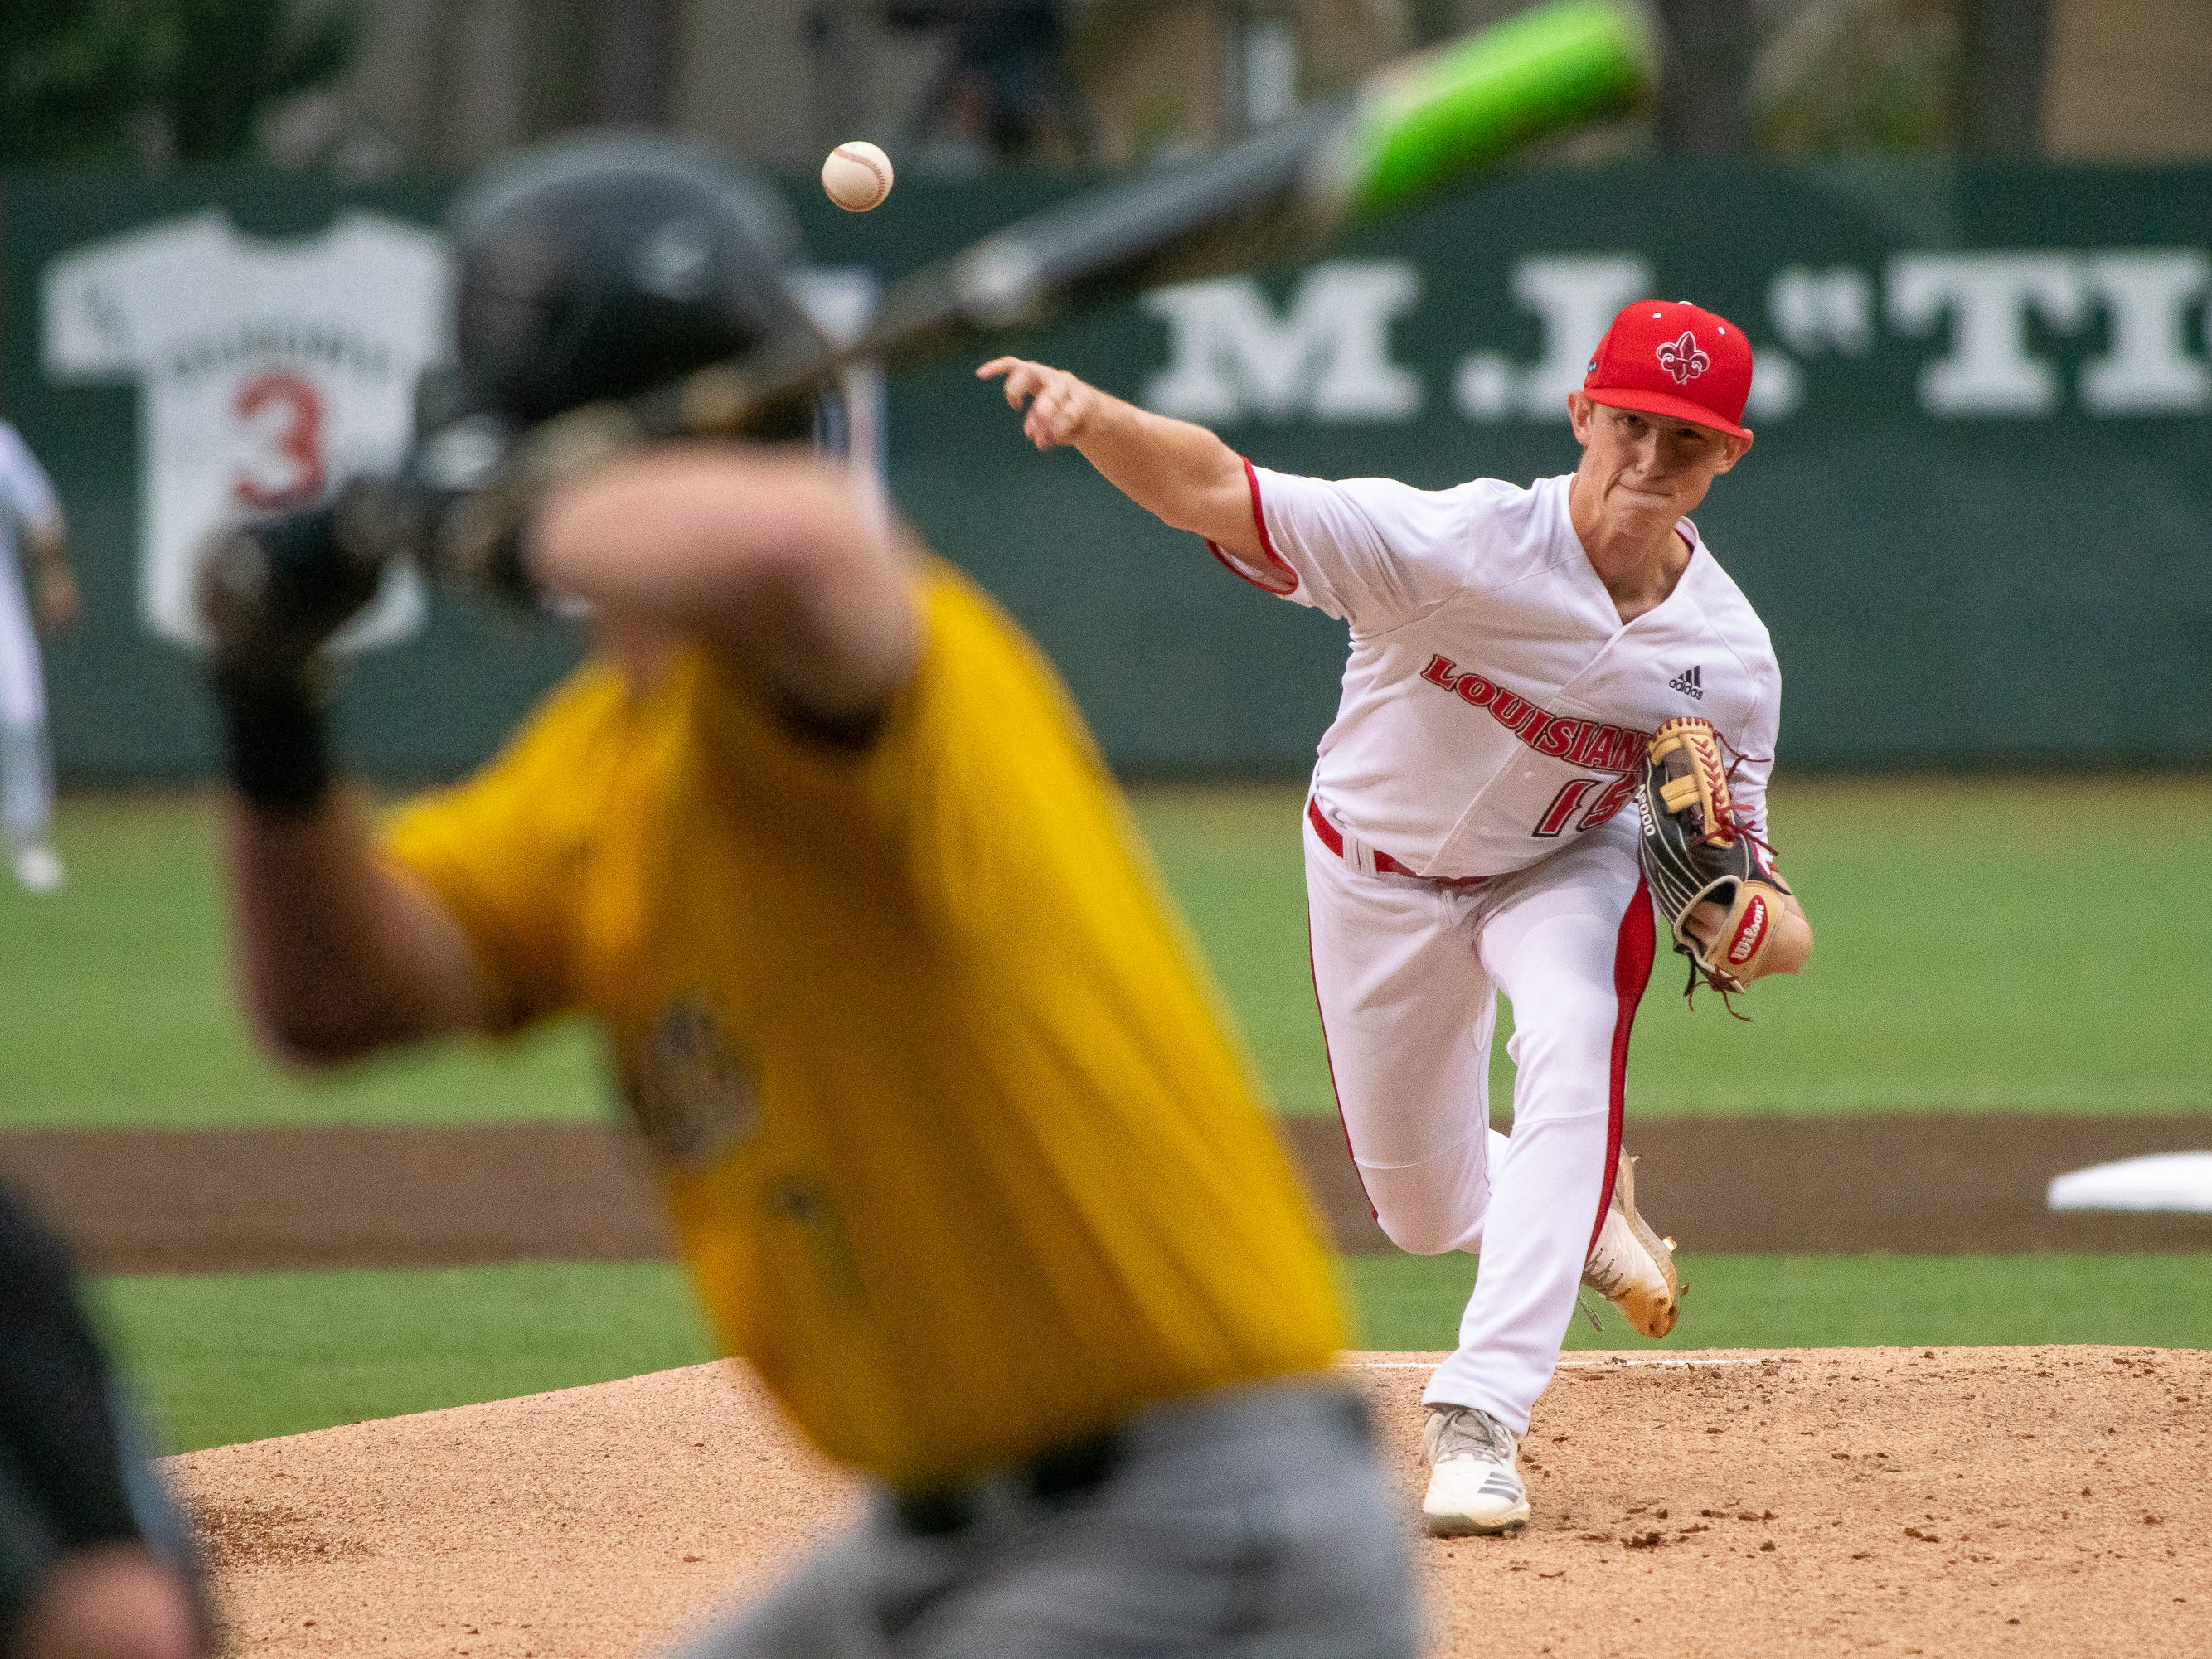 """UL's pitcher Jacob Schultz throws to the batter as the Ragin' Cajuns take on the Southern Miss Golden Eagles at M.L. """"Tigue"""" Moore Field on Wednesday, March 13, 2019."""